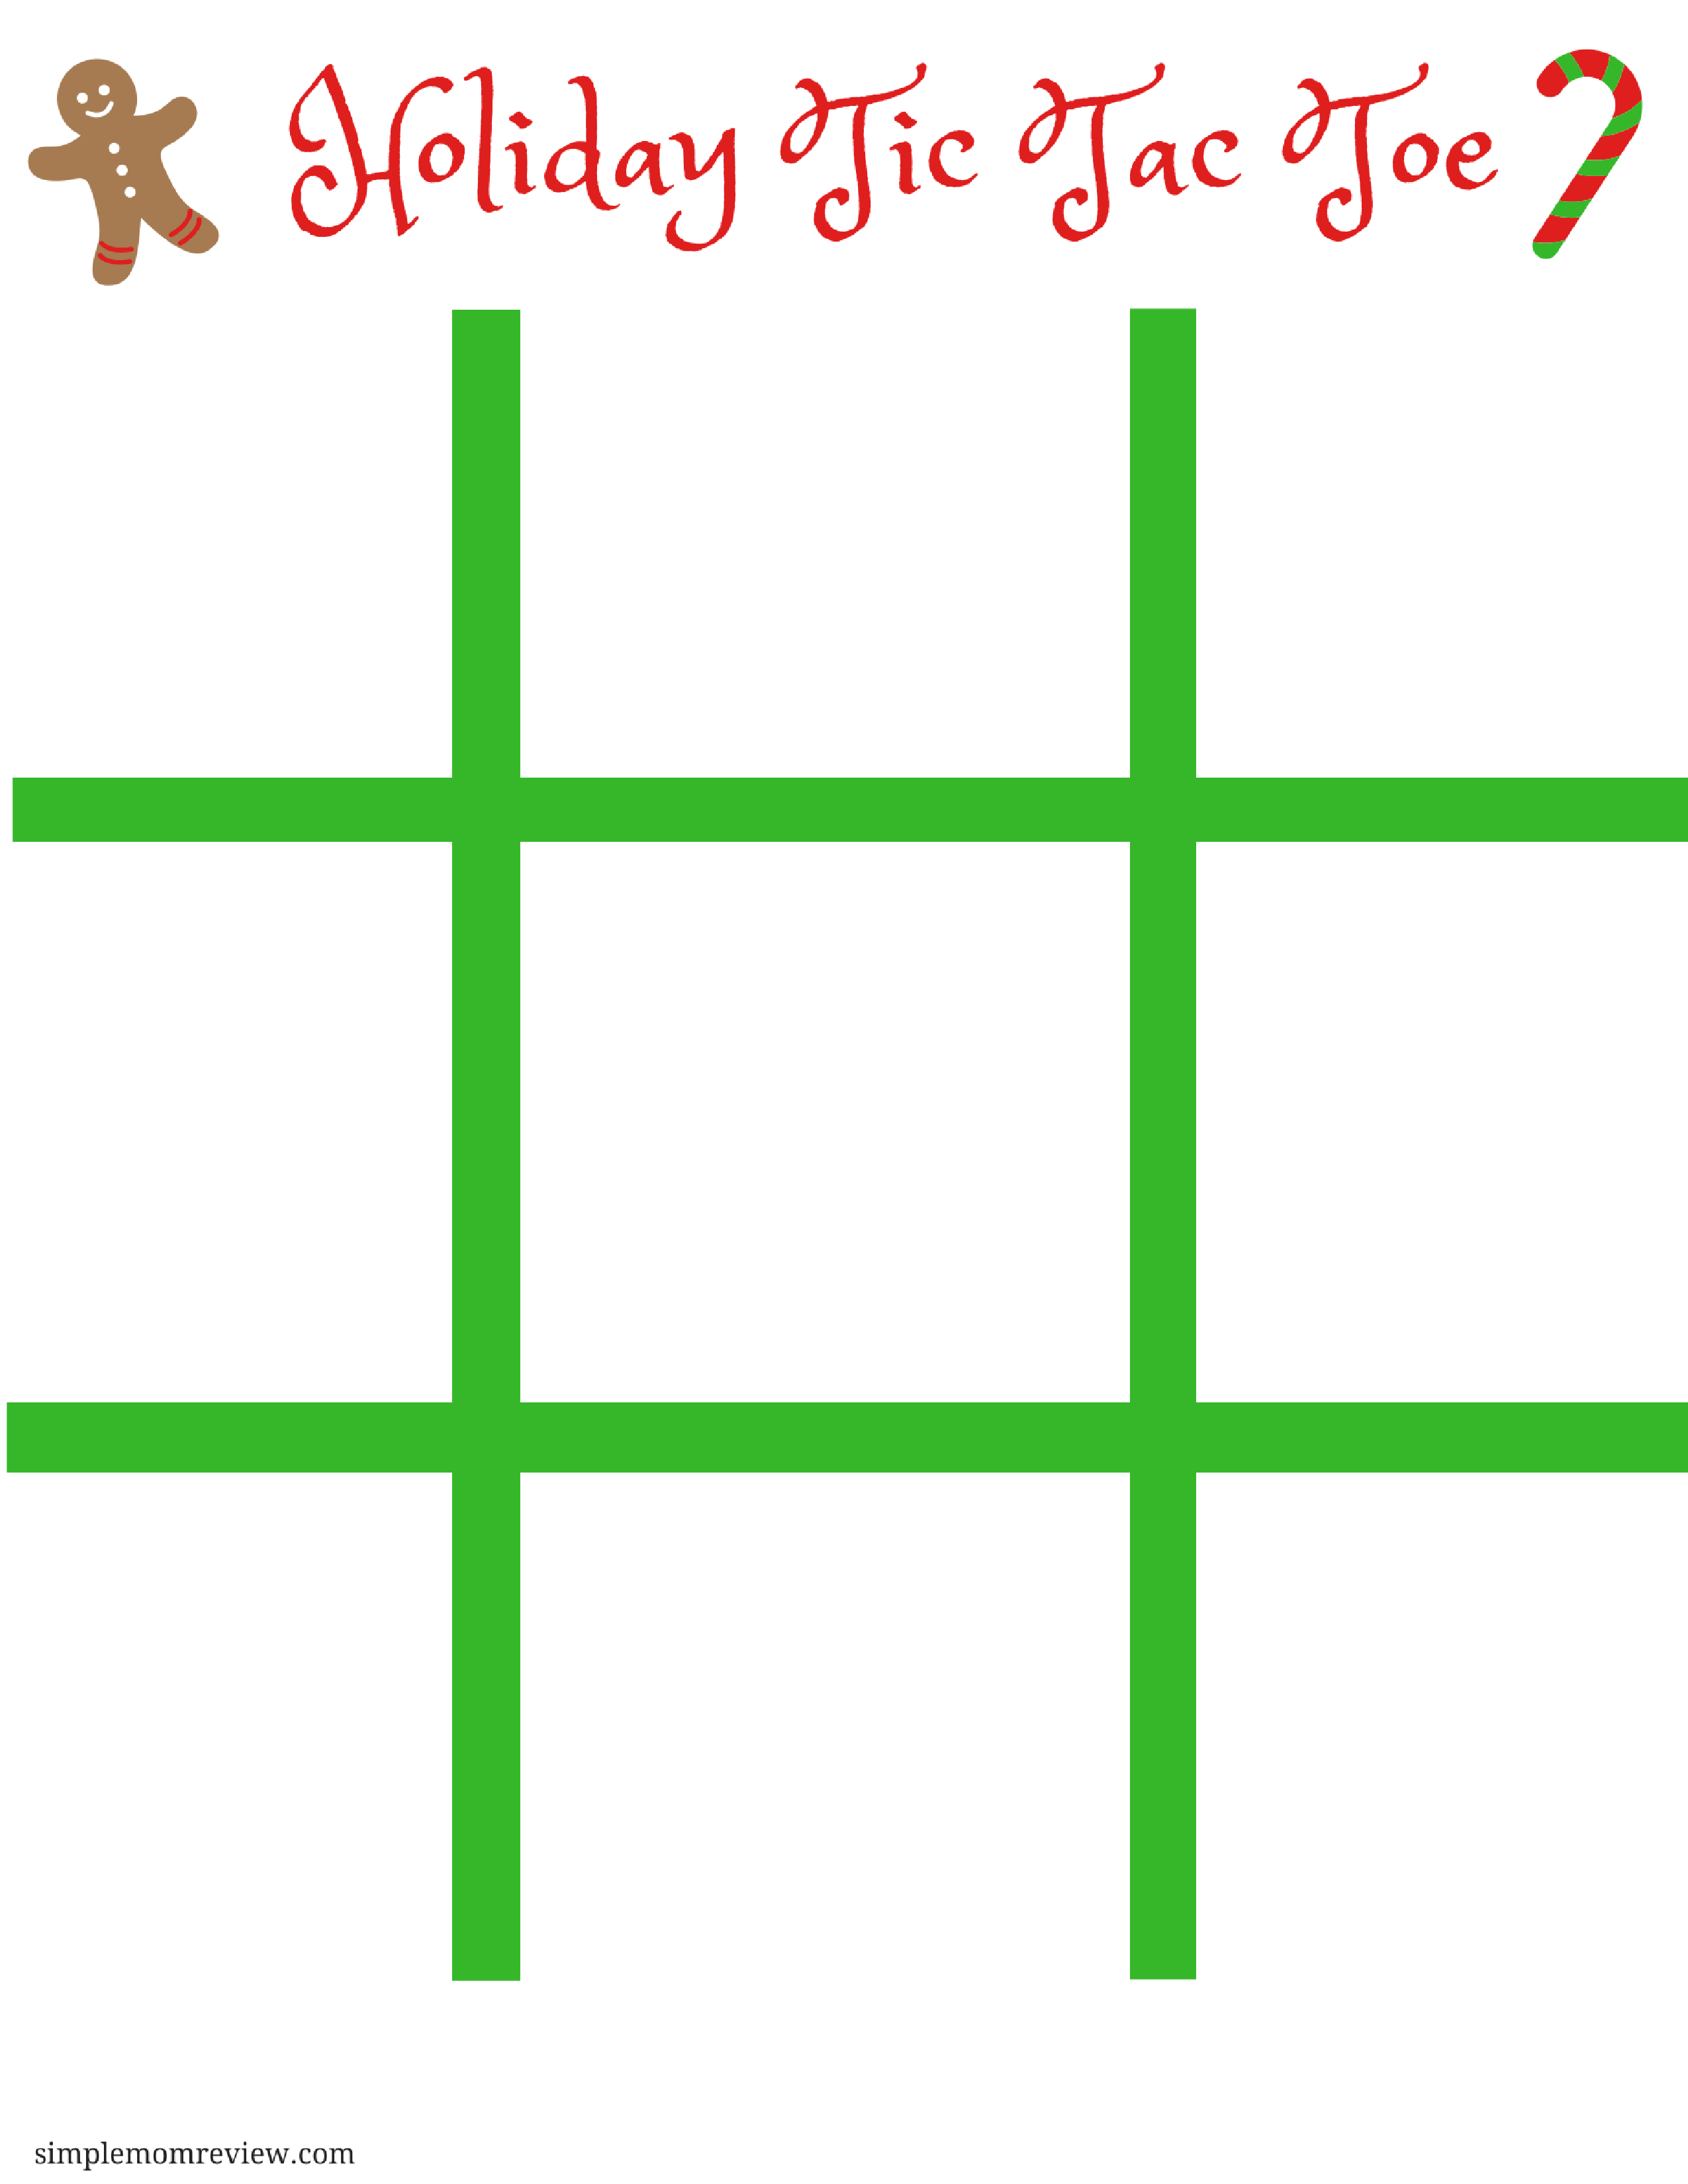 image relating to Tic Tac Toe Board Printable known as Gingerbread Person Tic Tac Toe - Very simple Mother Evaluation